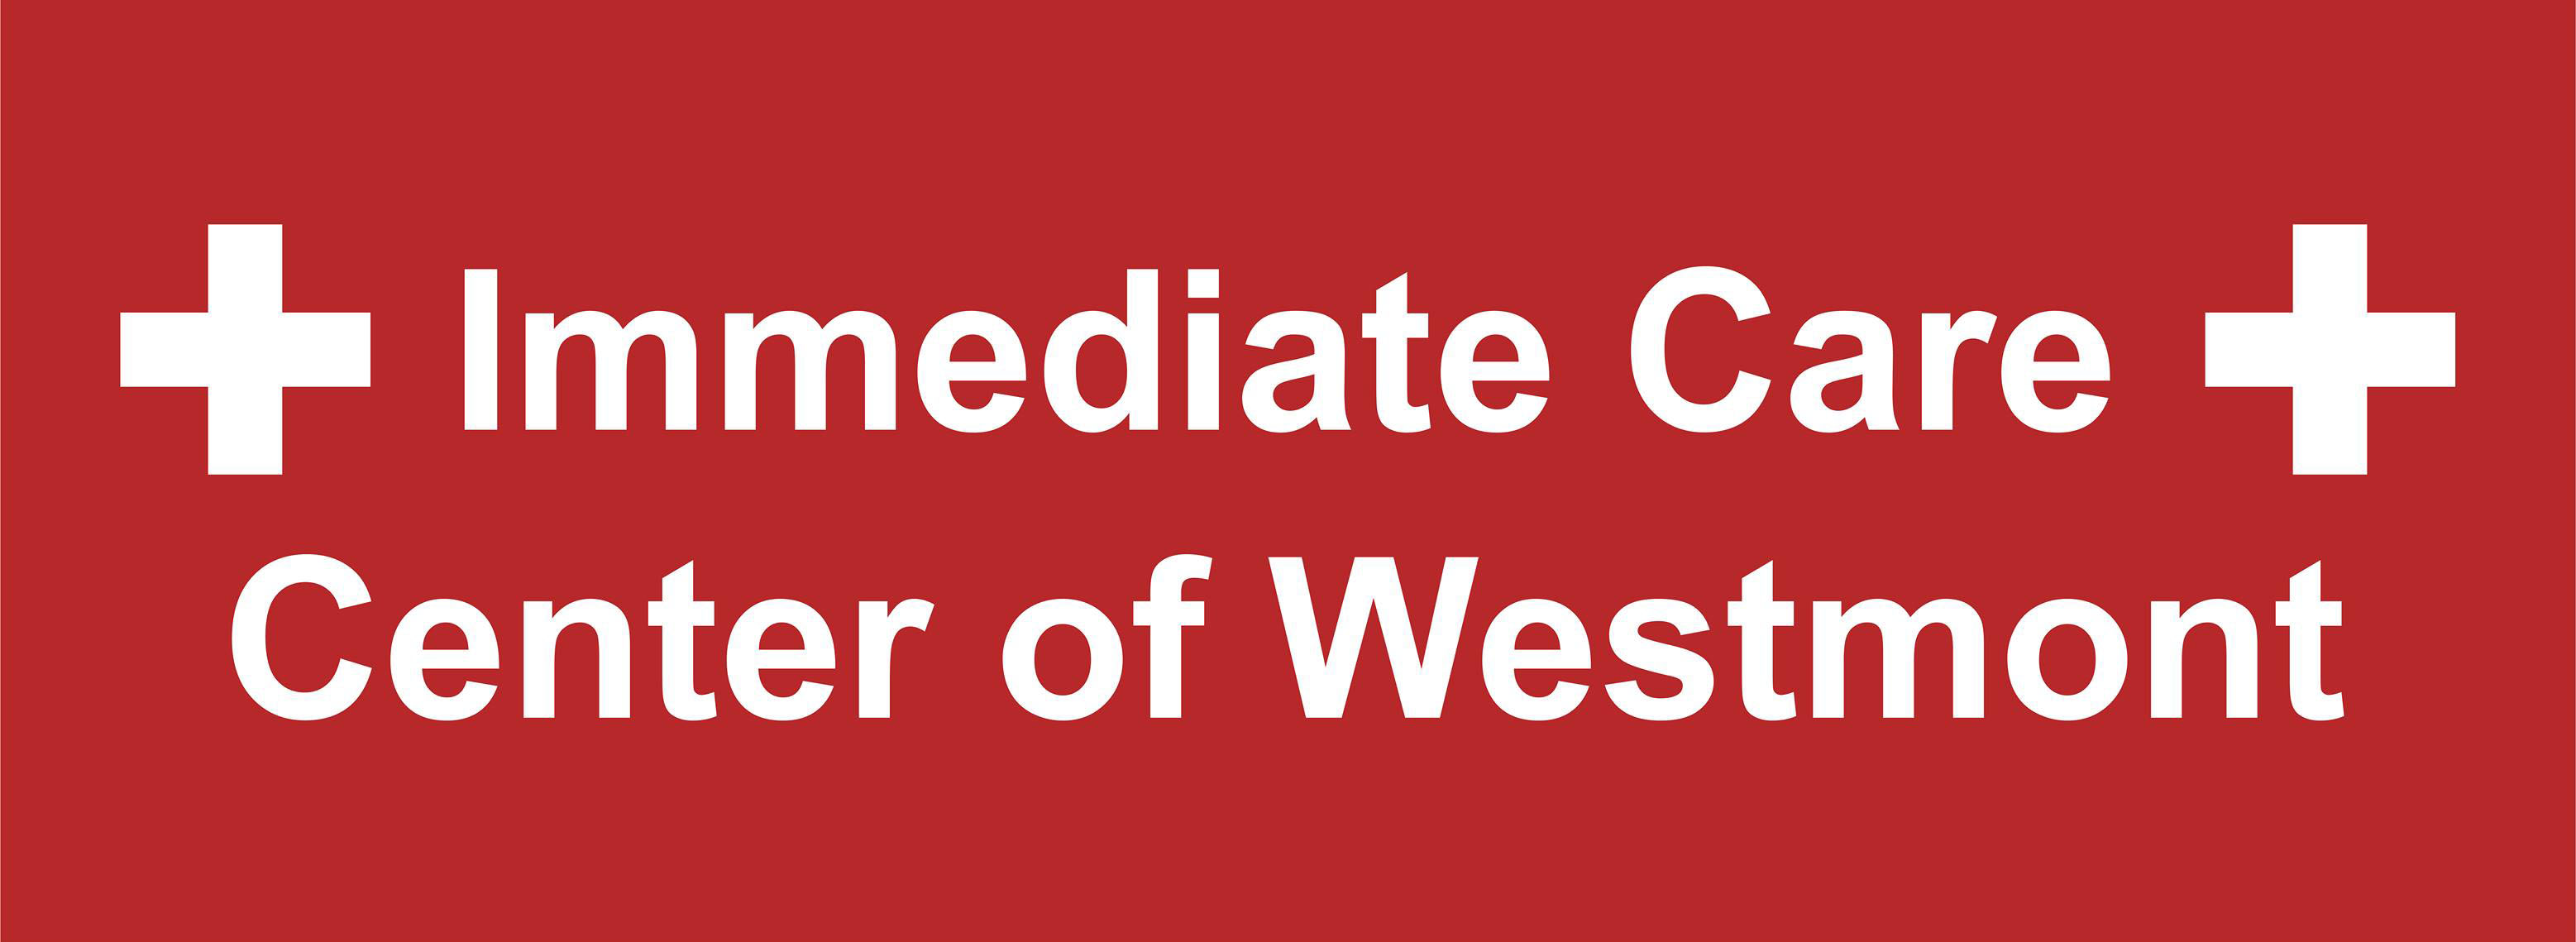 Immediate Care Center of Westmont Logo